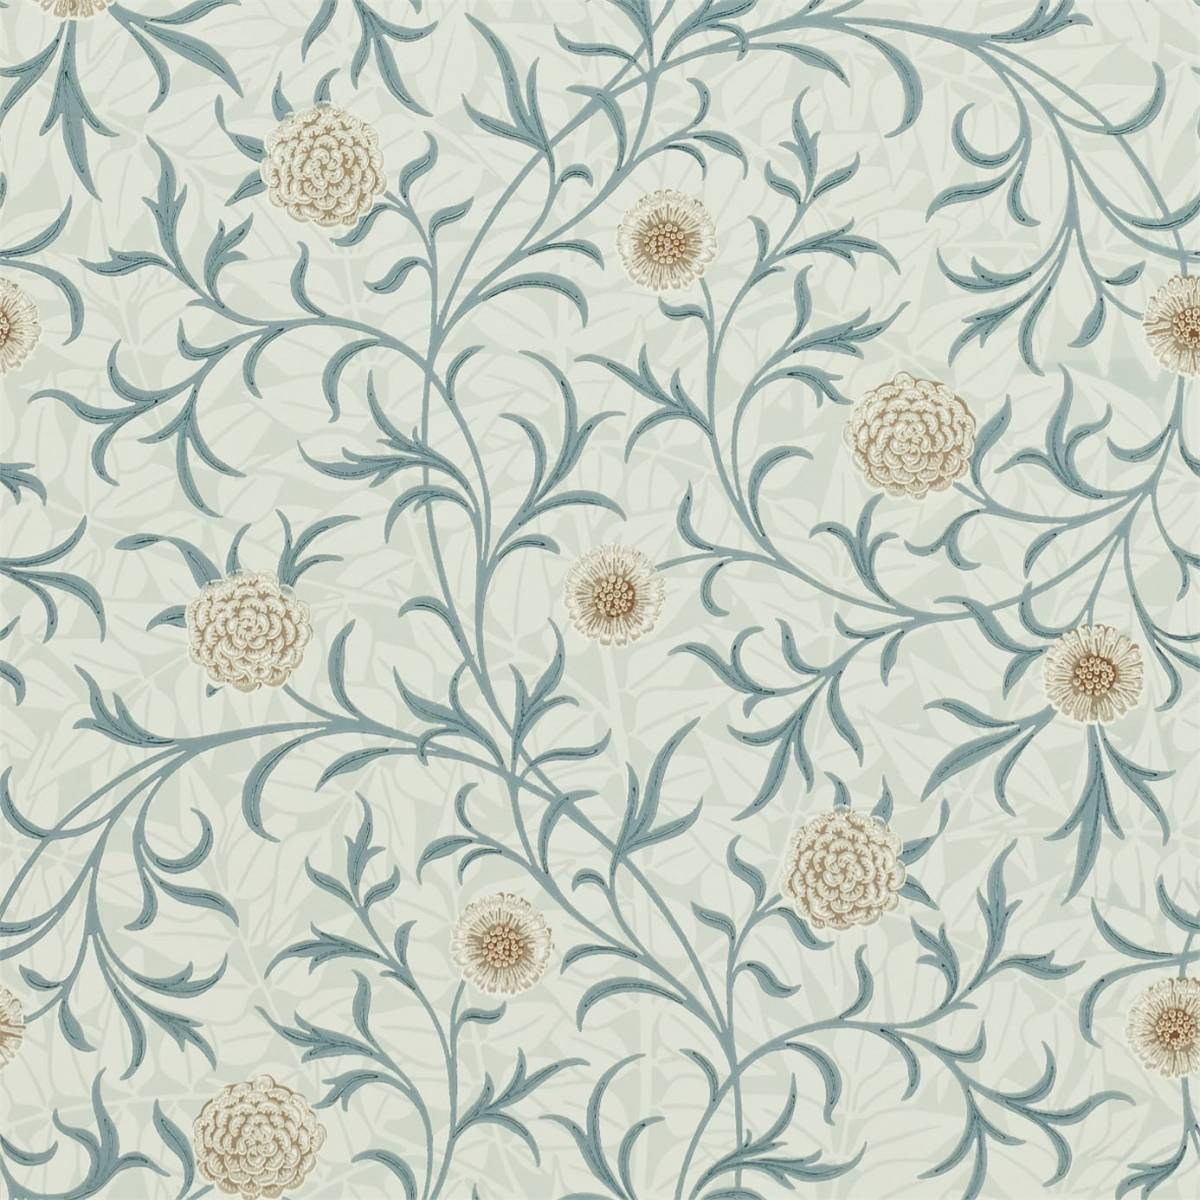 William Morris & Co Archive Wallpapers Scroll Wallpaper - Loden/Slate ...